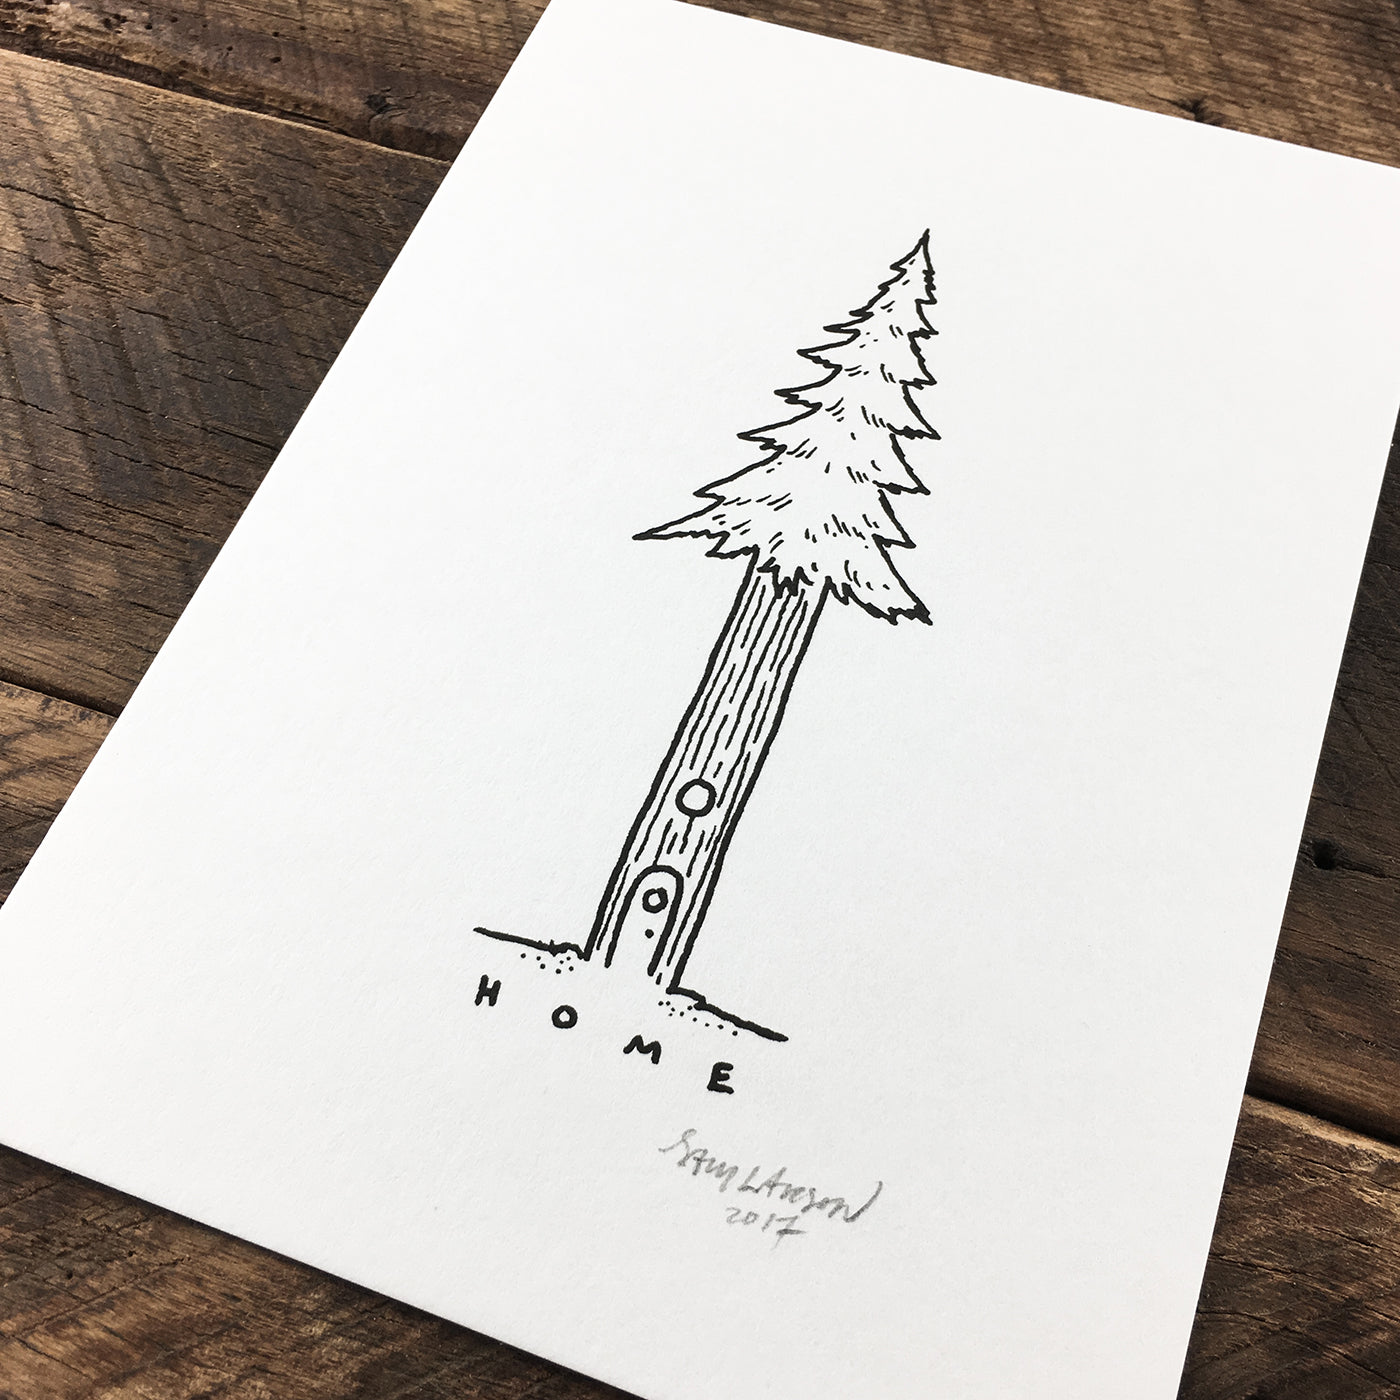 Tree house - Signed Print #65